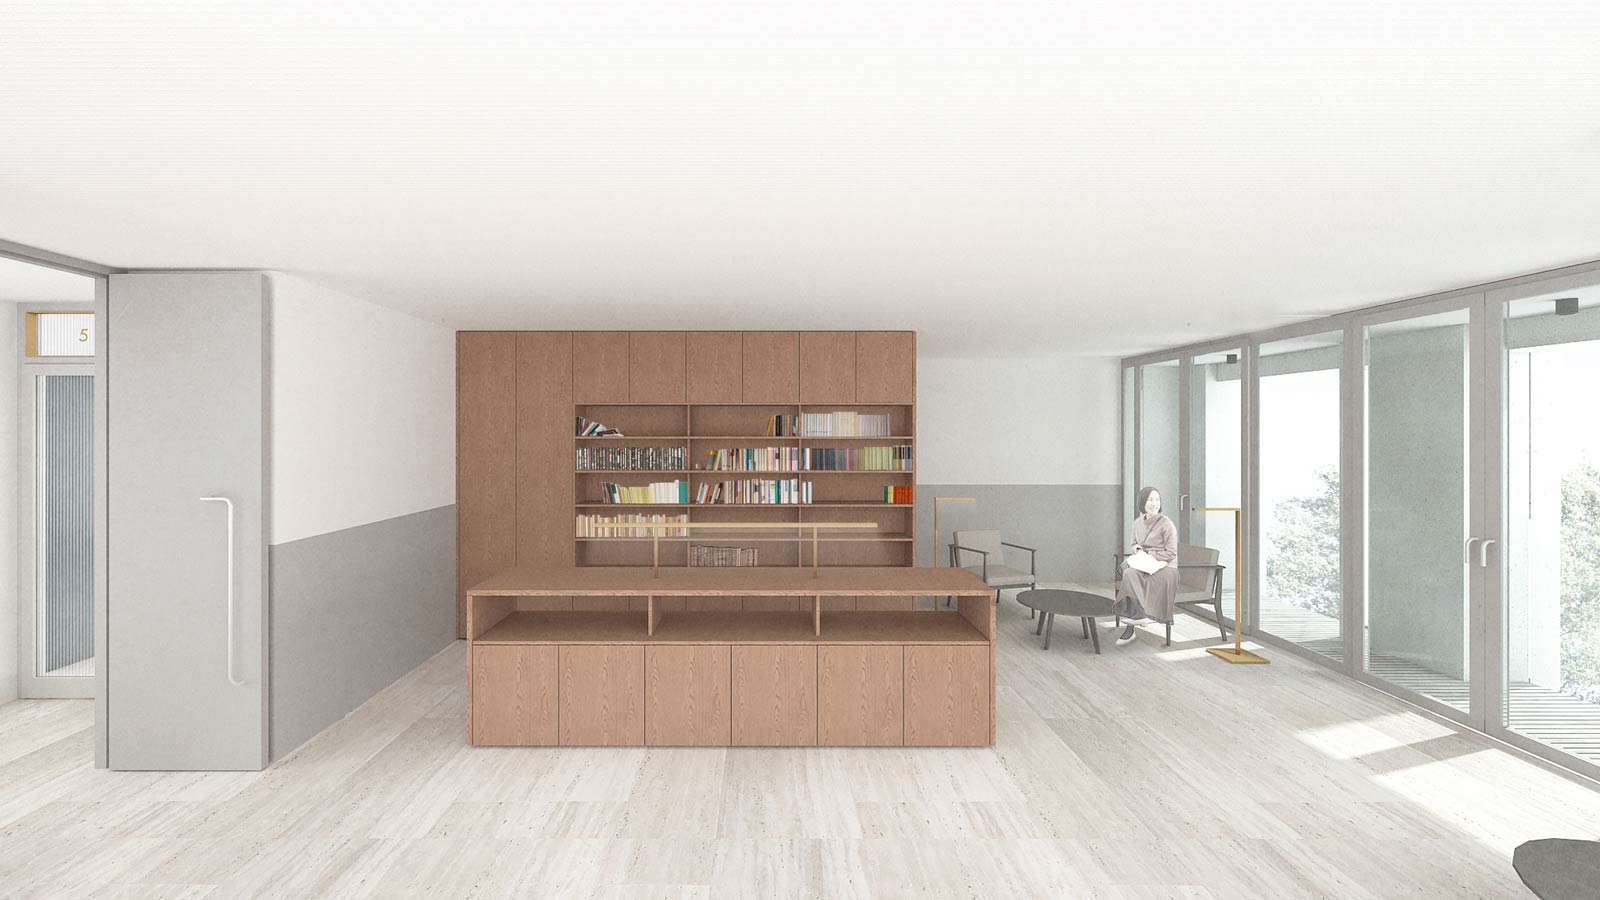 collective lobby on the fifth floor with library of Werkspoor op Oostenburg project by BETA architects Amsterdam